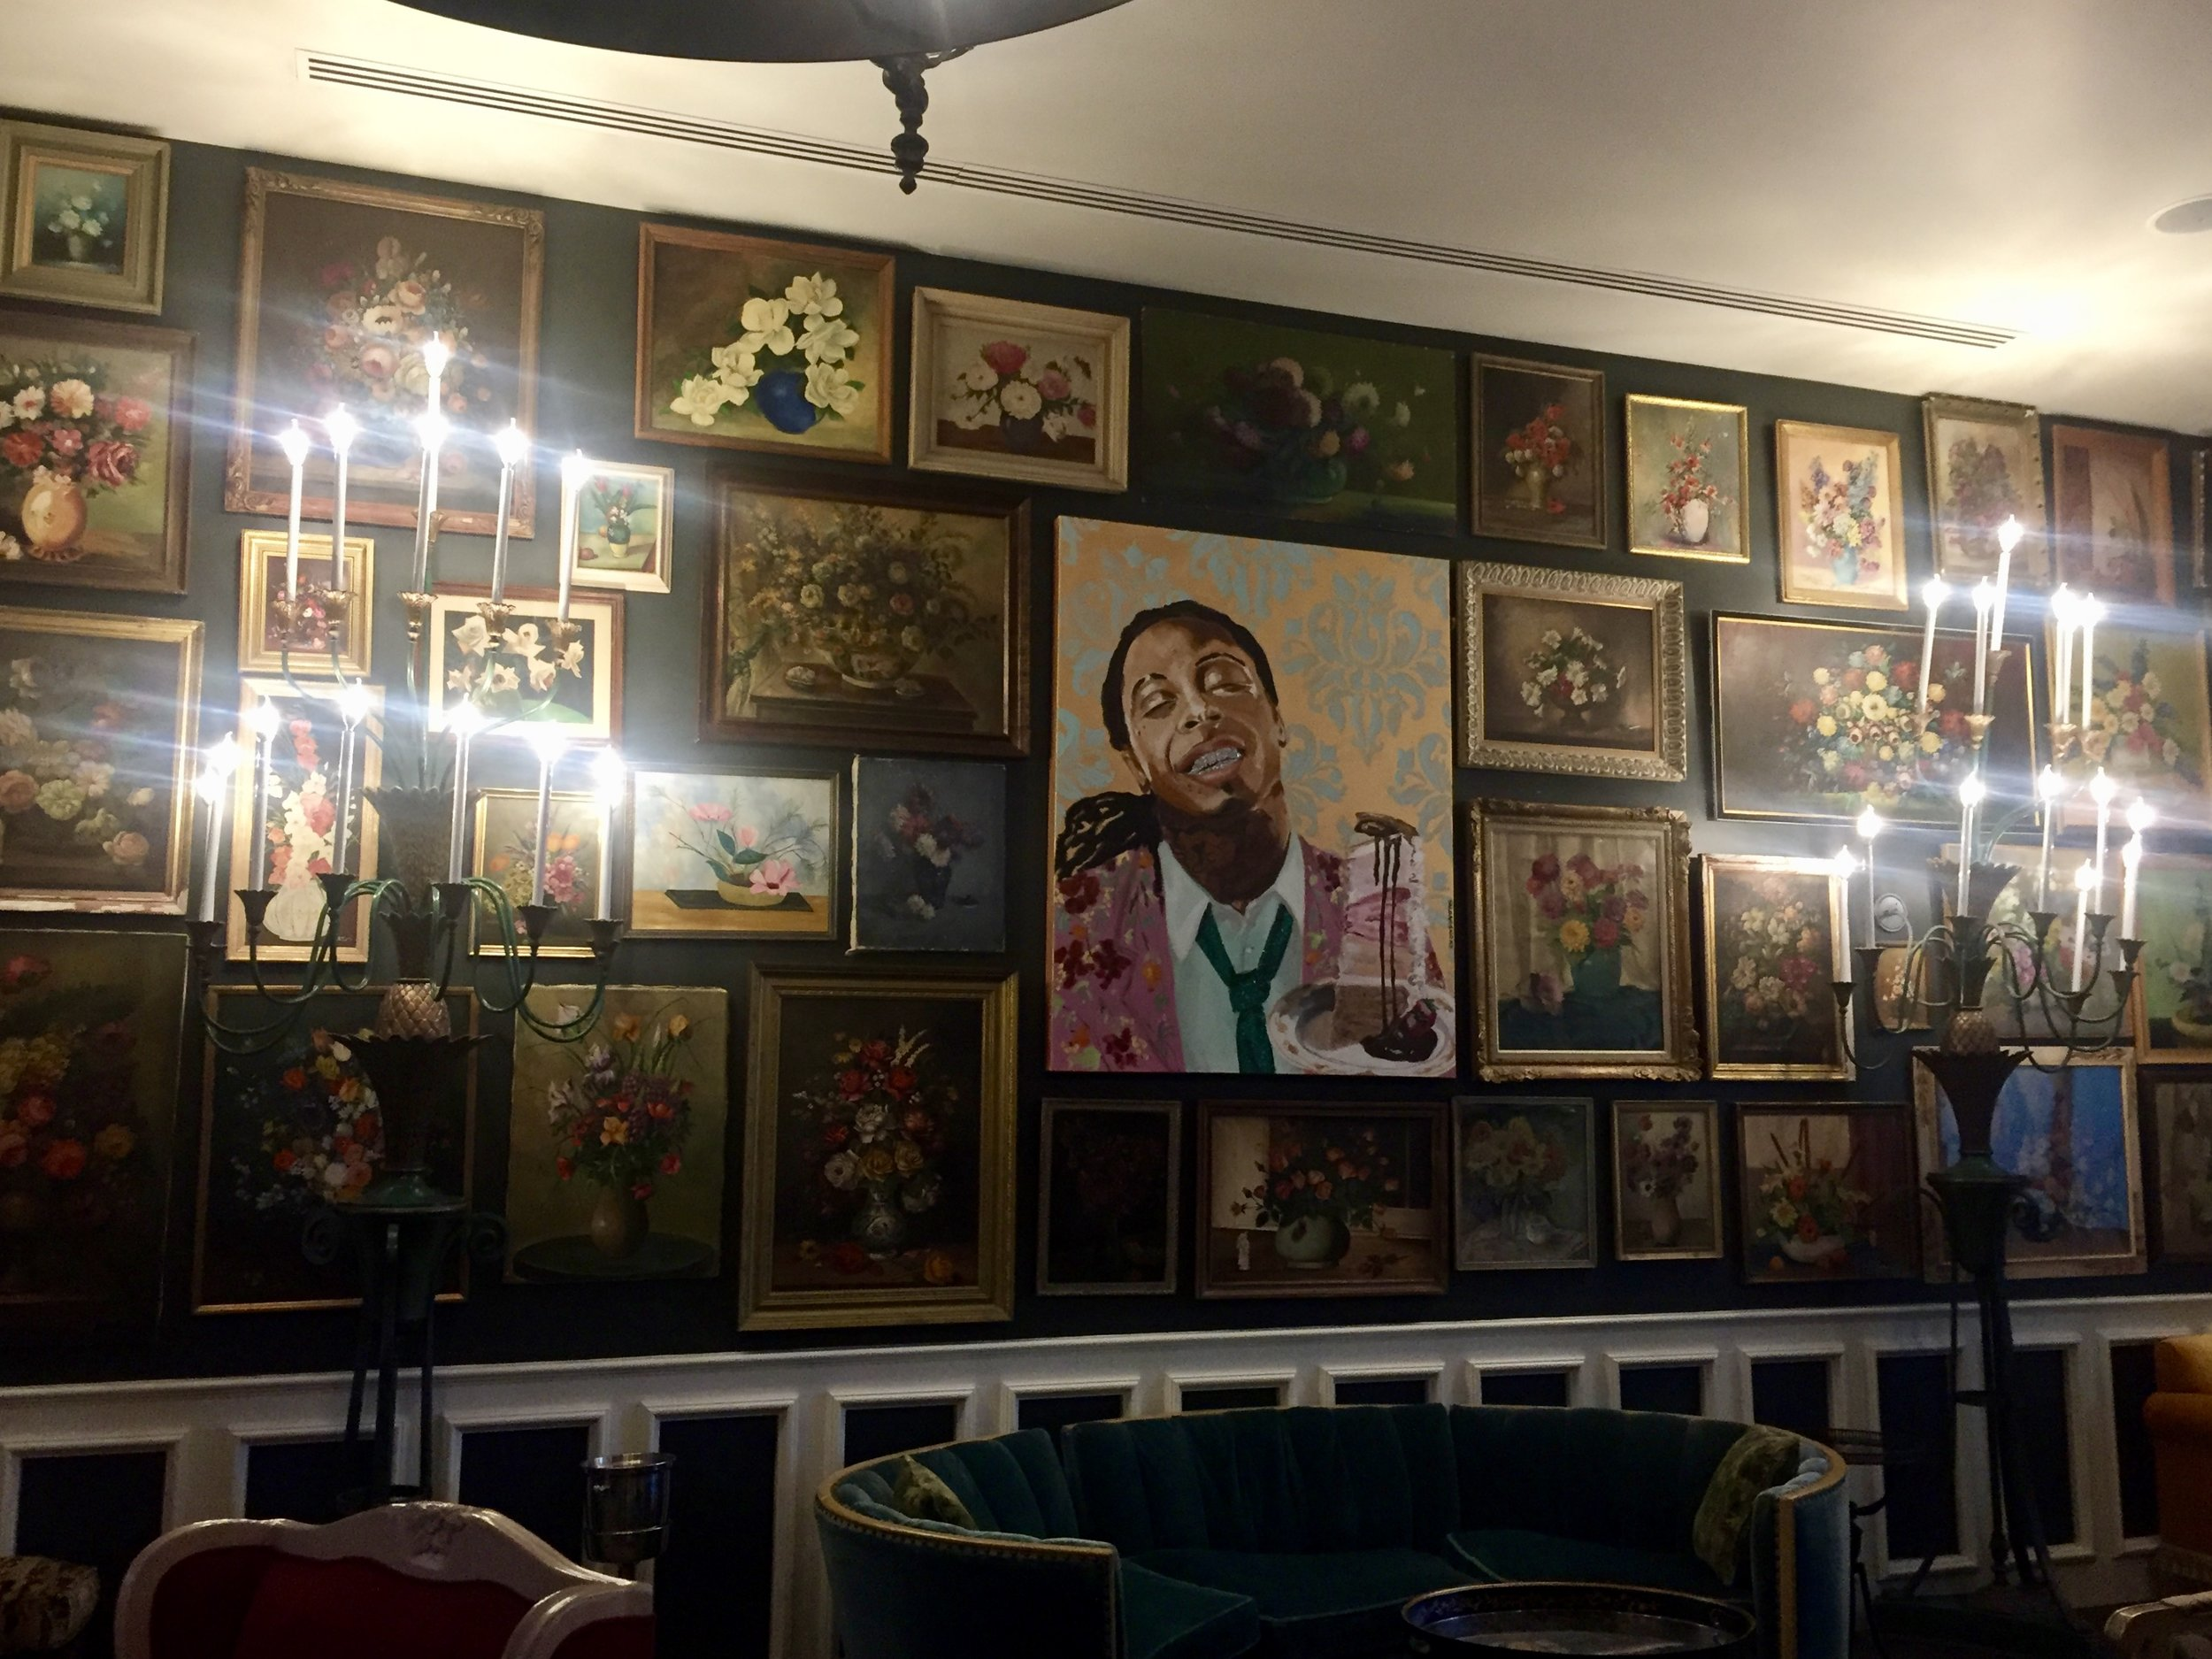 Lil Wayne amid a sea of paintings in the Hotel Pontchartrain. Artist is Ashley Longshore.